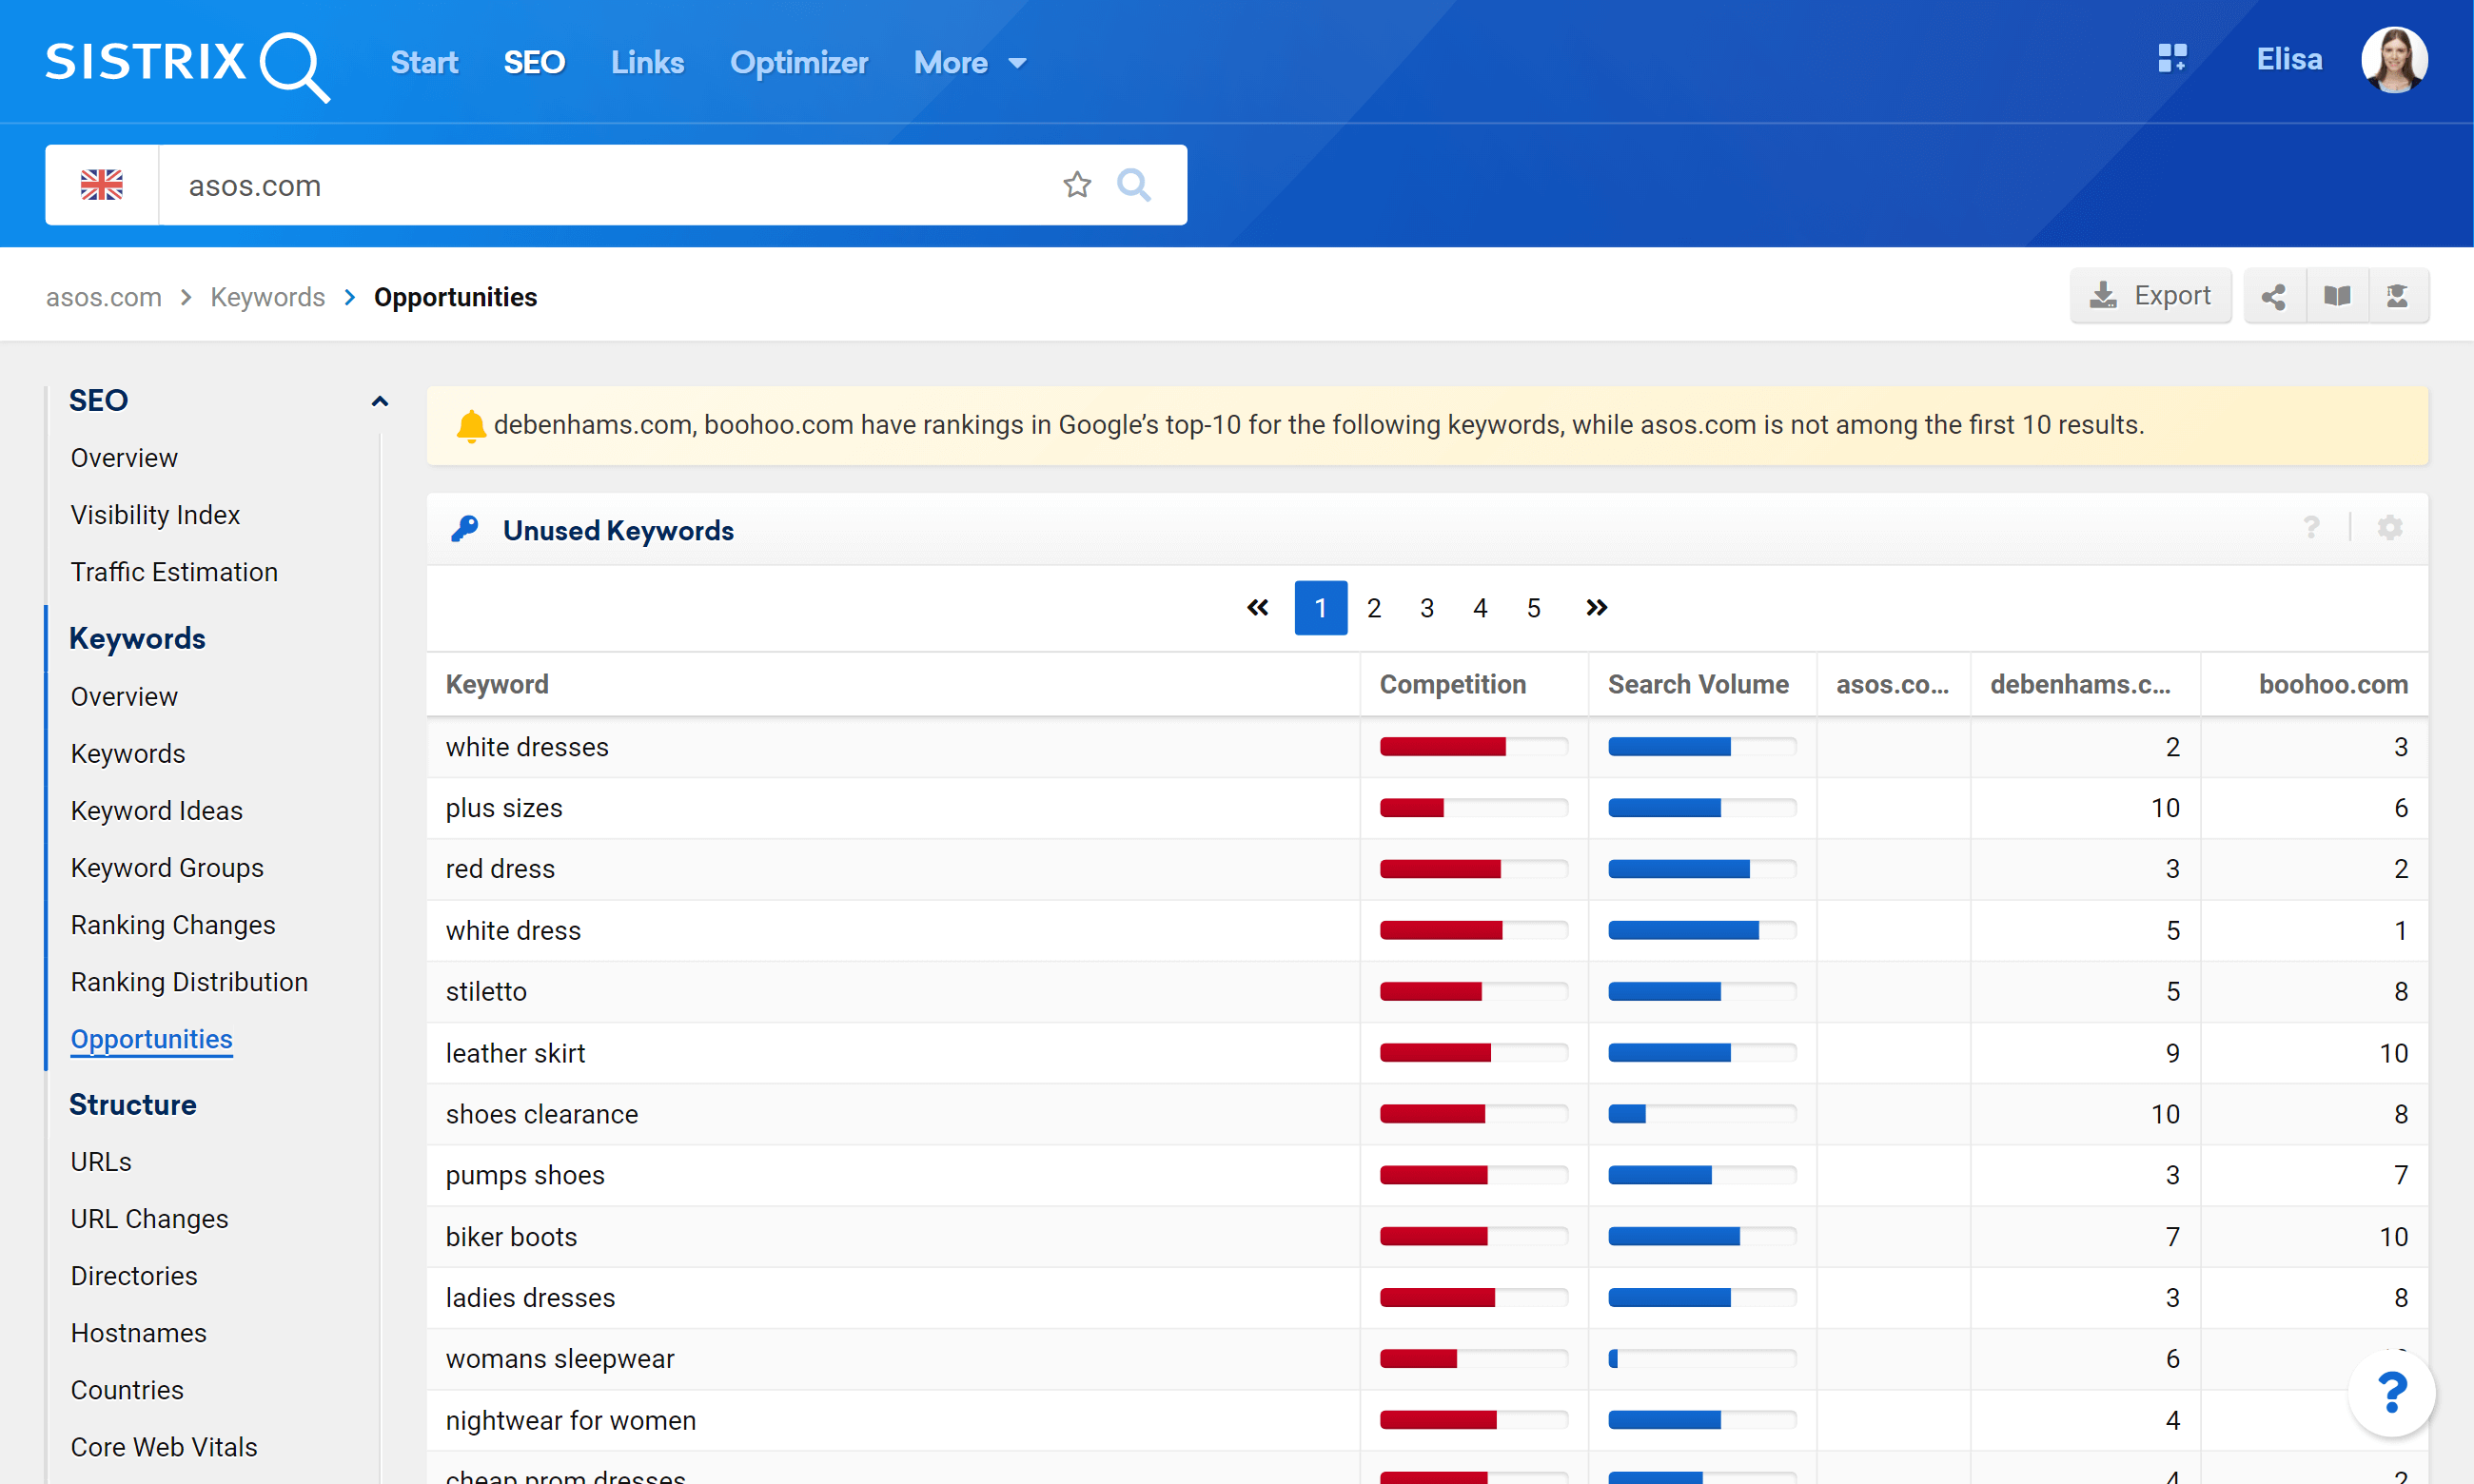 Results for the unused keywords